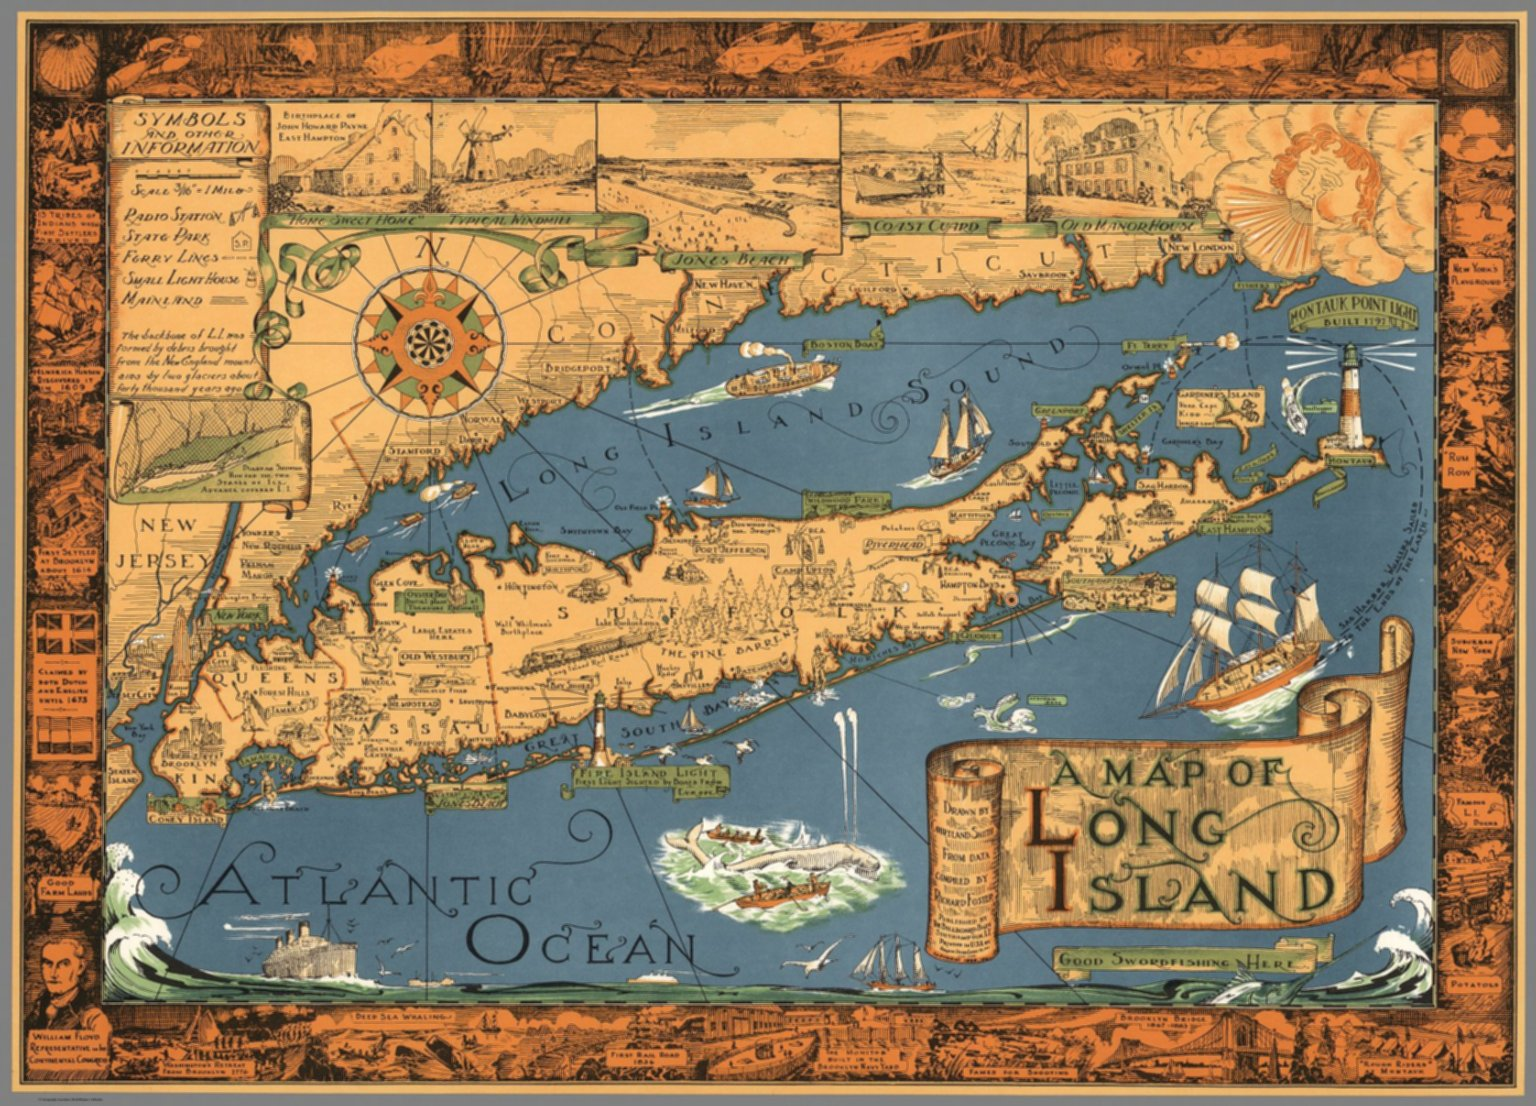 A Map Of Long Island Drawn By Courtland Smith From Data Compiled By Richard Foster